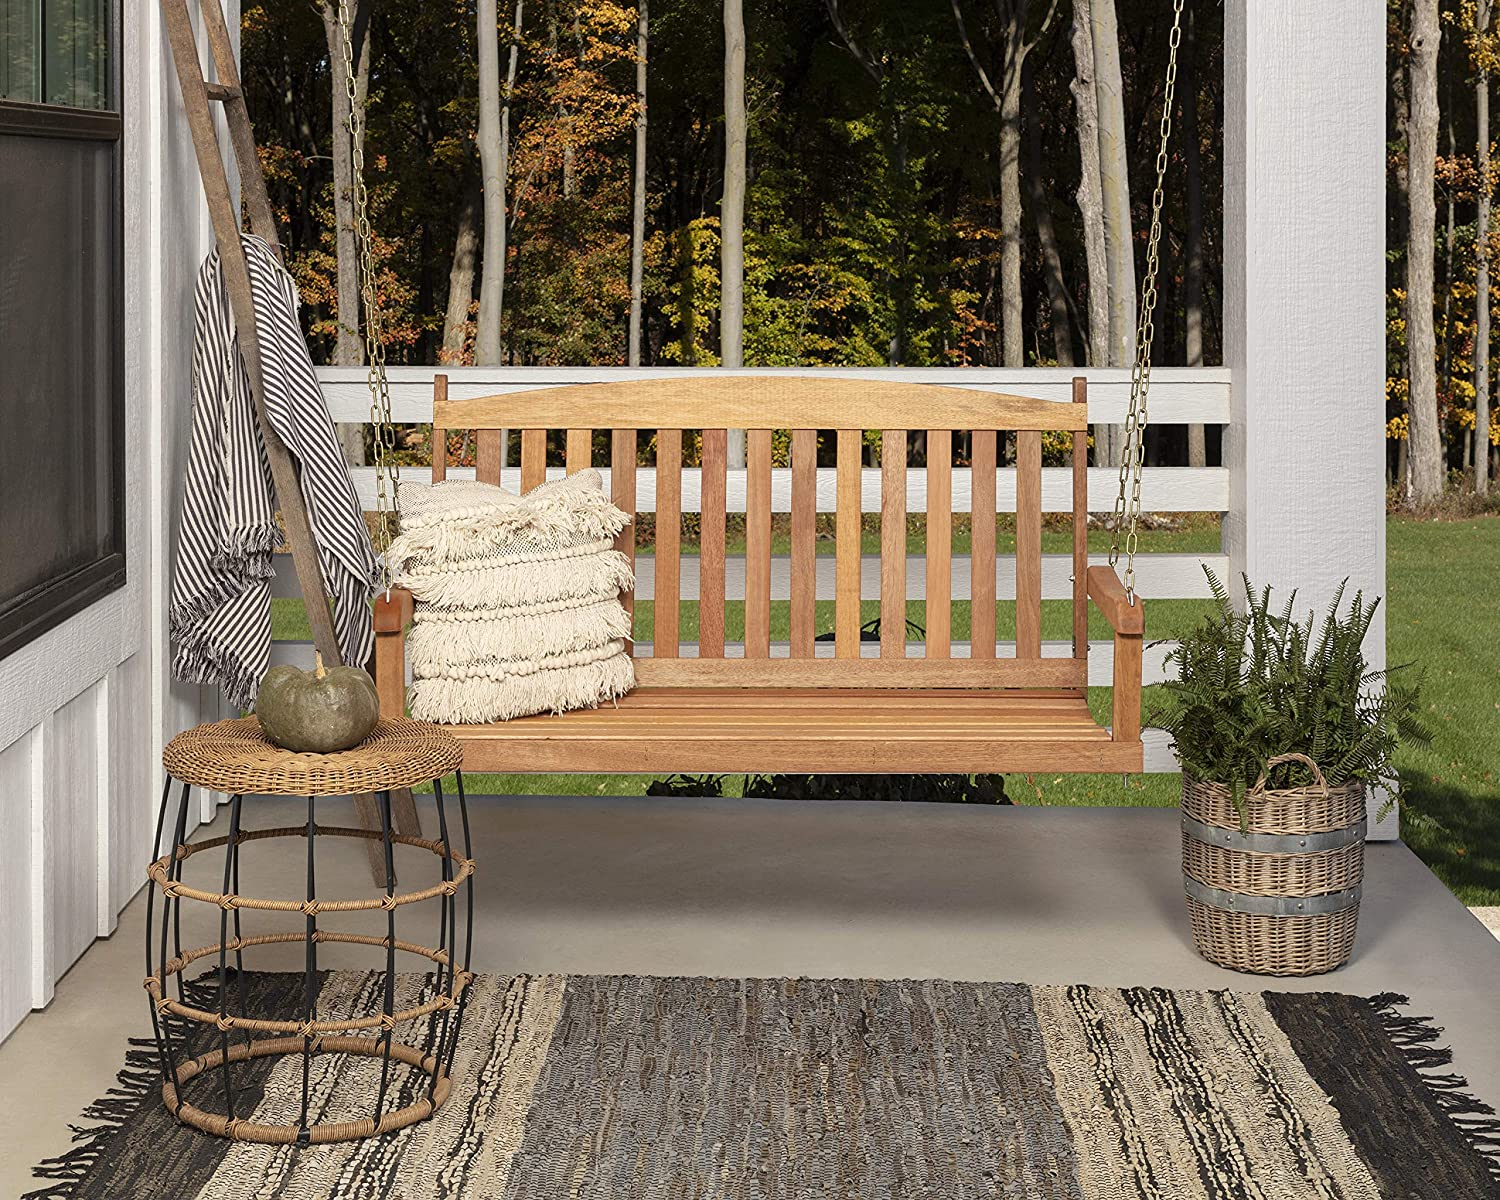 Woodlawn&Home 4' Hardwood Swing with Chains in Honey Finish 800032